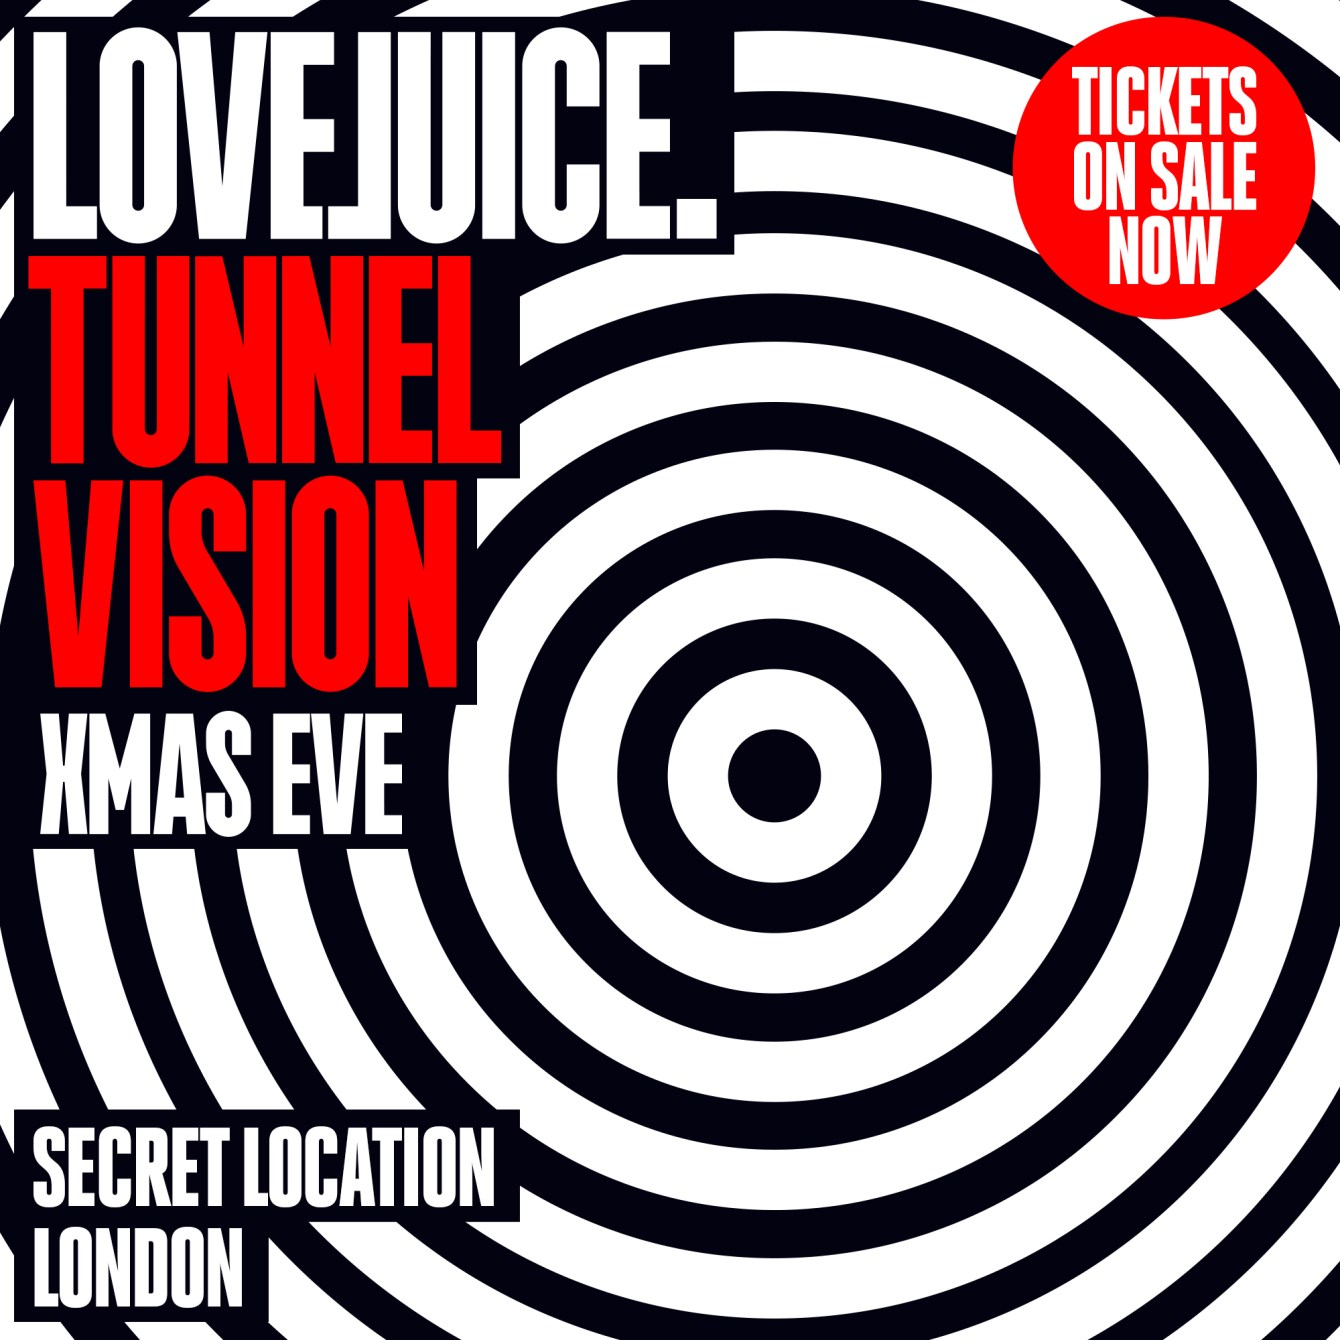 [RESCHEDULED] LoveJuice Tunnel Vision Xmas Eve - Thurs 24th Dec 2020 - Flyer front